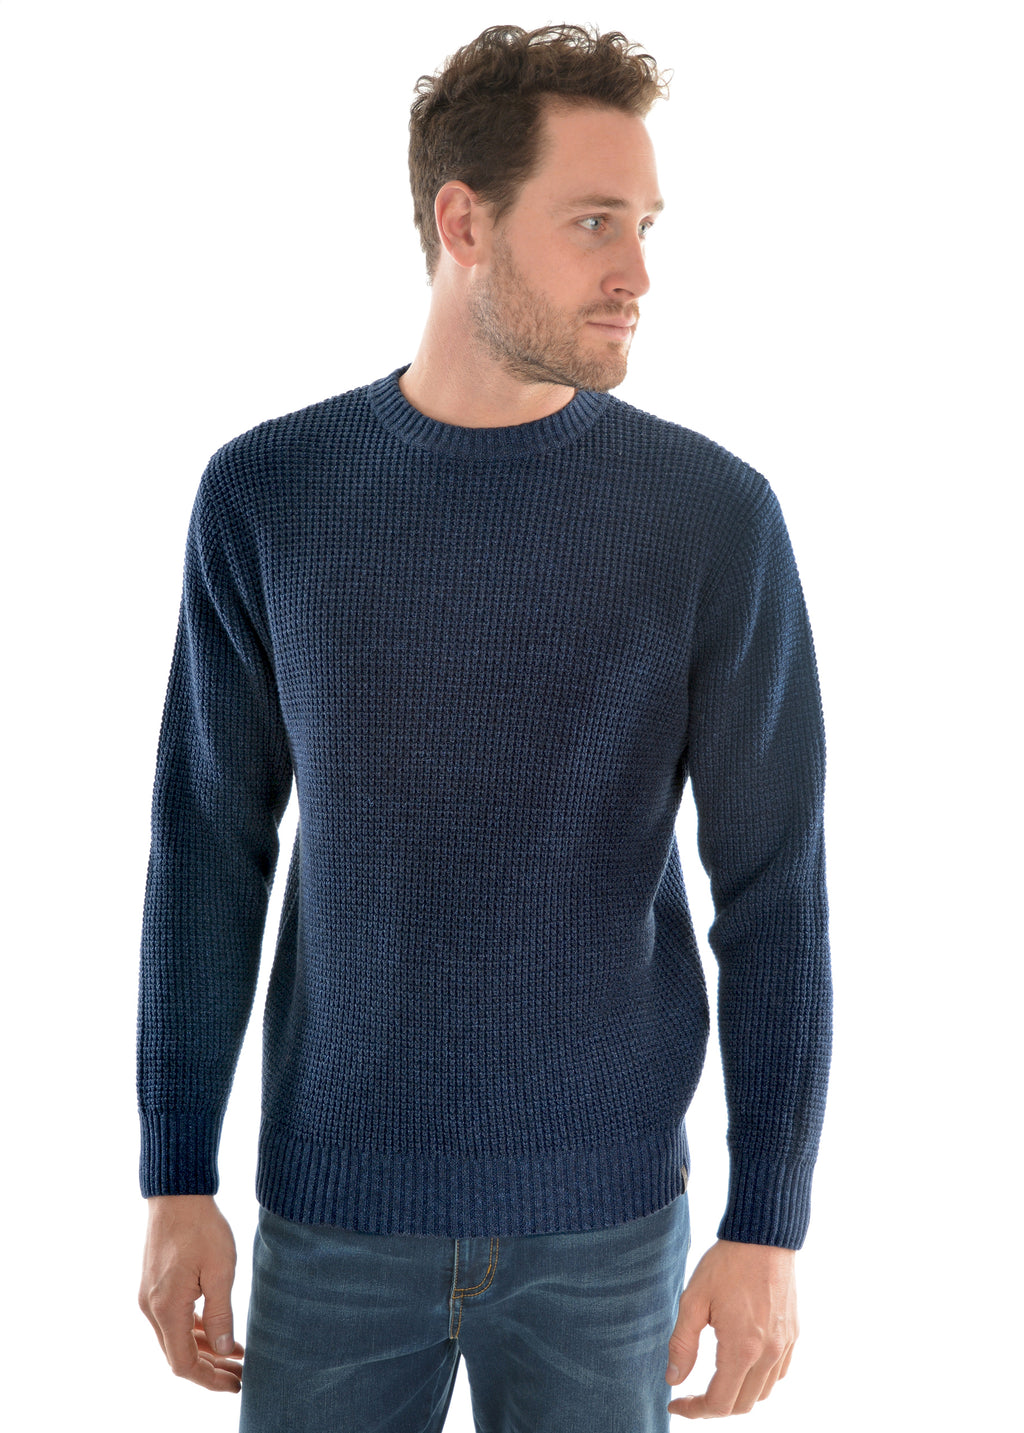 Thomas Cook Mens Station Crew Neck Knit Jumper